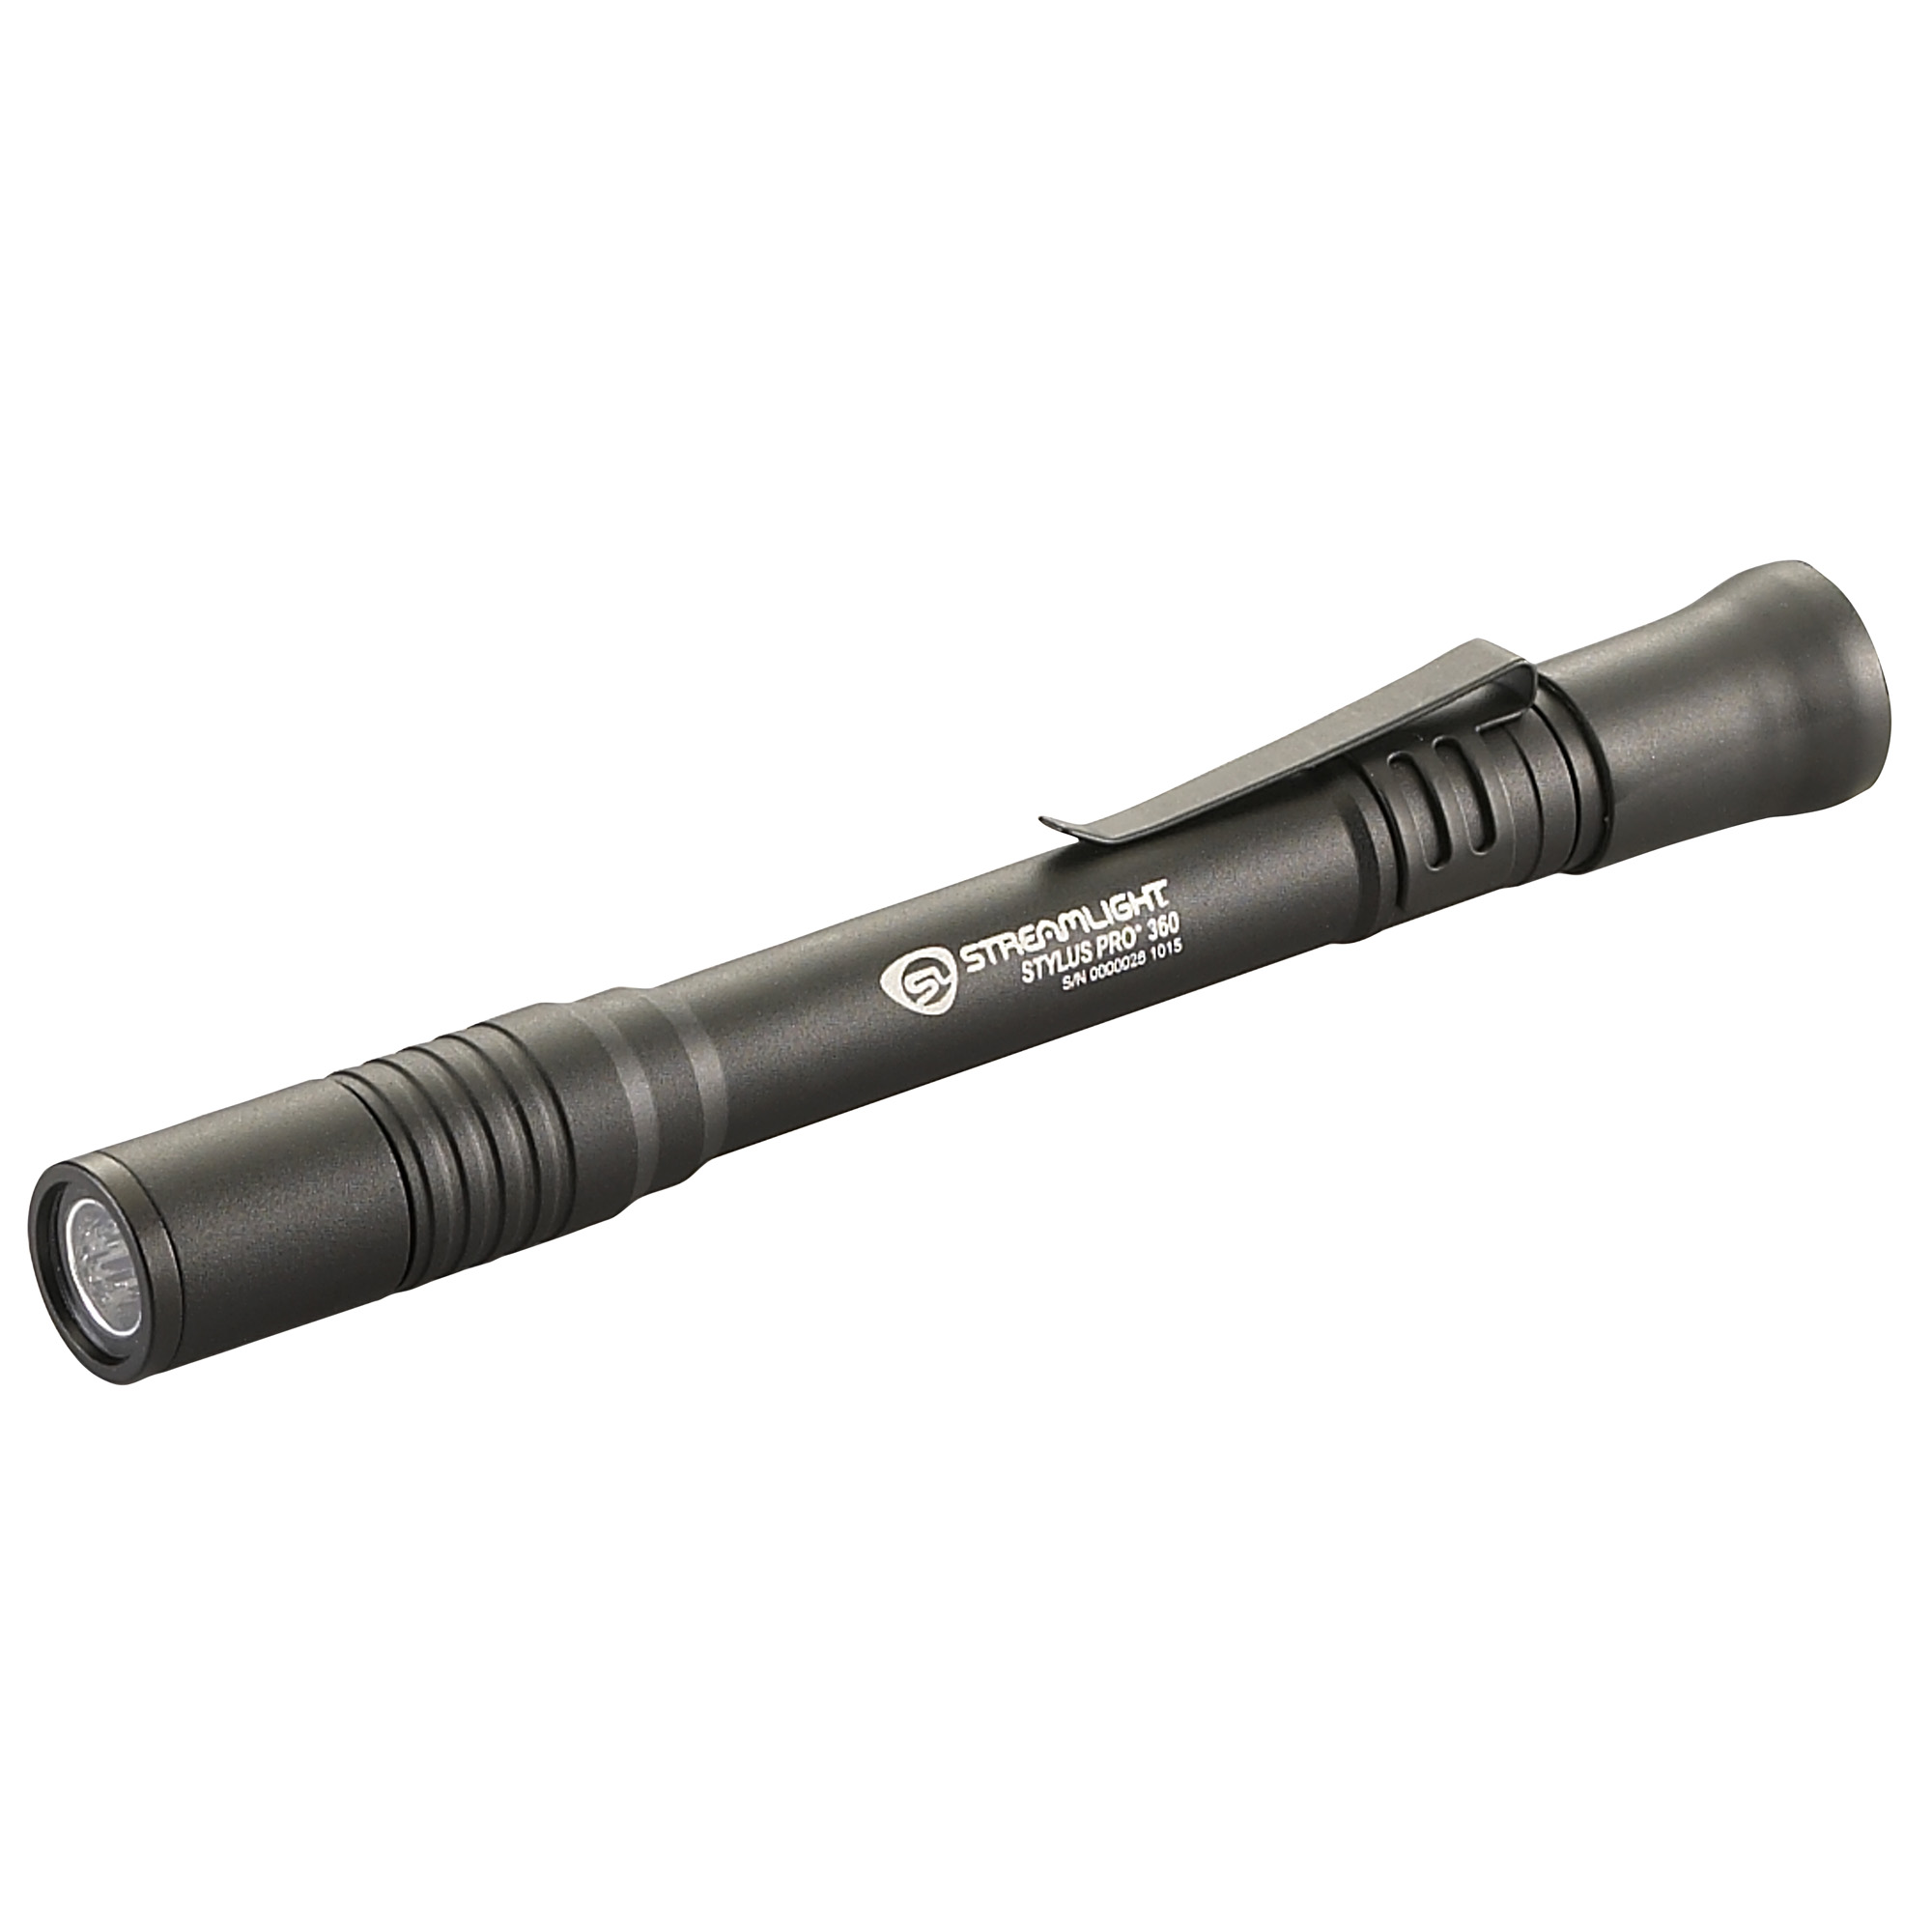 "This sleek"" compact penlight has a lantern feature that provides hands-free use of 360 degree of light. Small enough to fit in your pocket"" it's convenient to take with you anywhere."